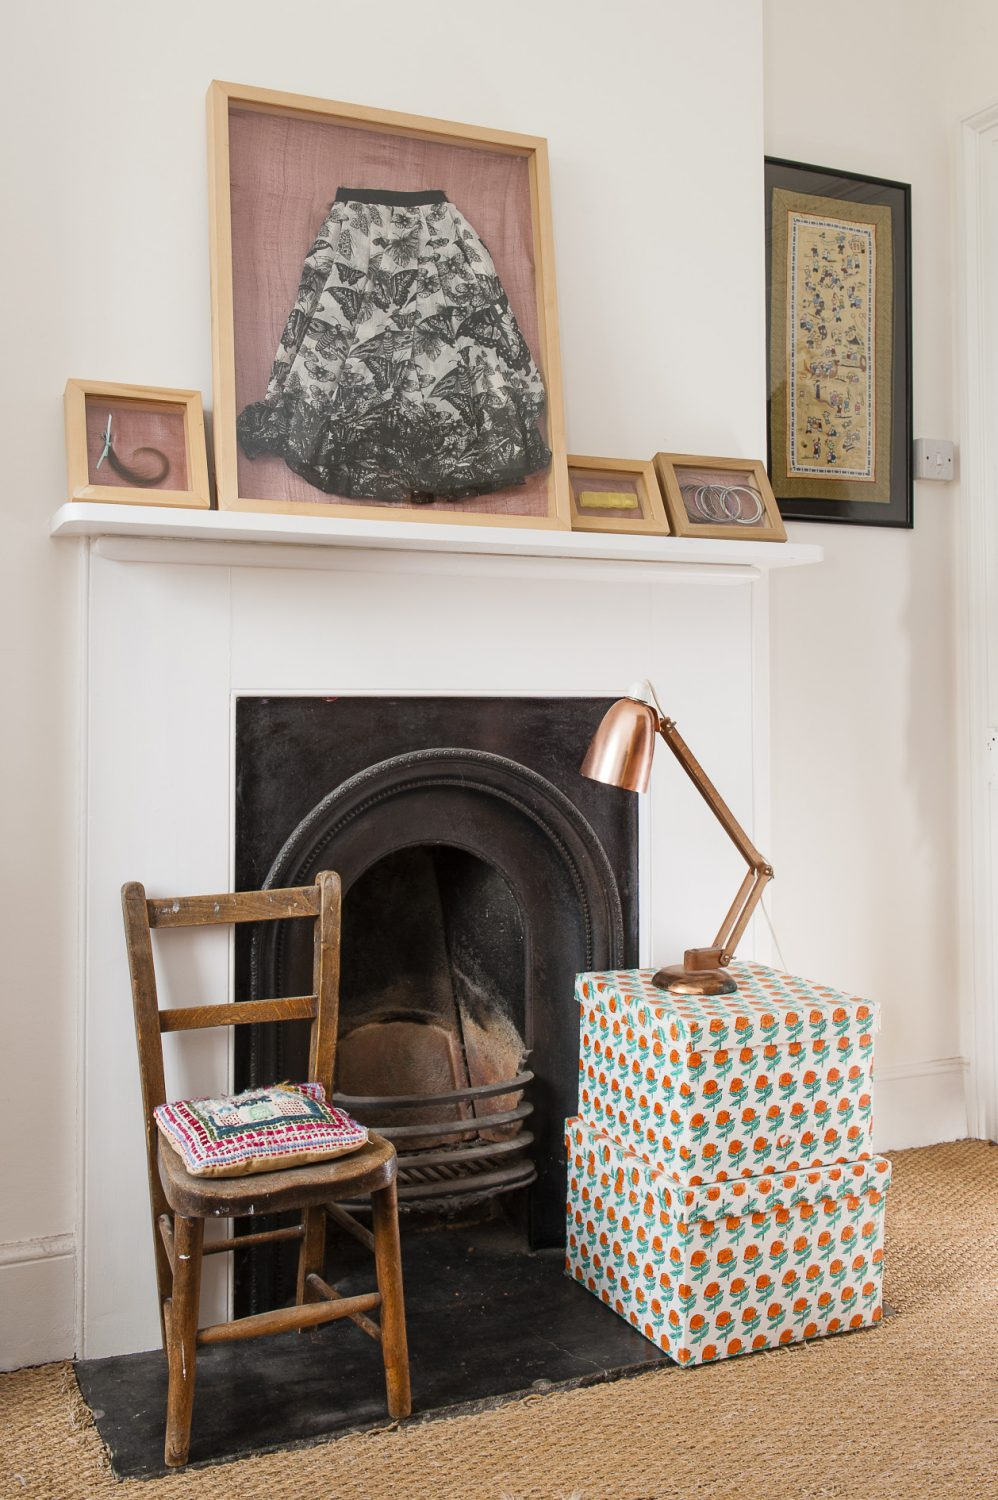 The room that was Rosa's is simply furnished and above the fireplace on the wall there are picture frames containing some of her things. In the centre is the butterfly skirt that Vanessa writes movingly about in her memoir